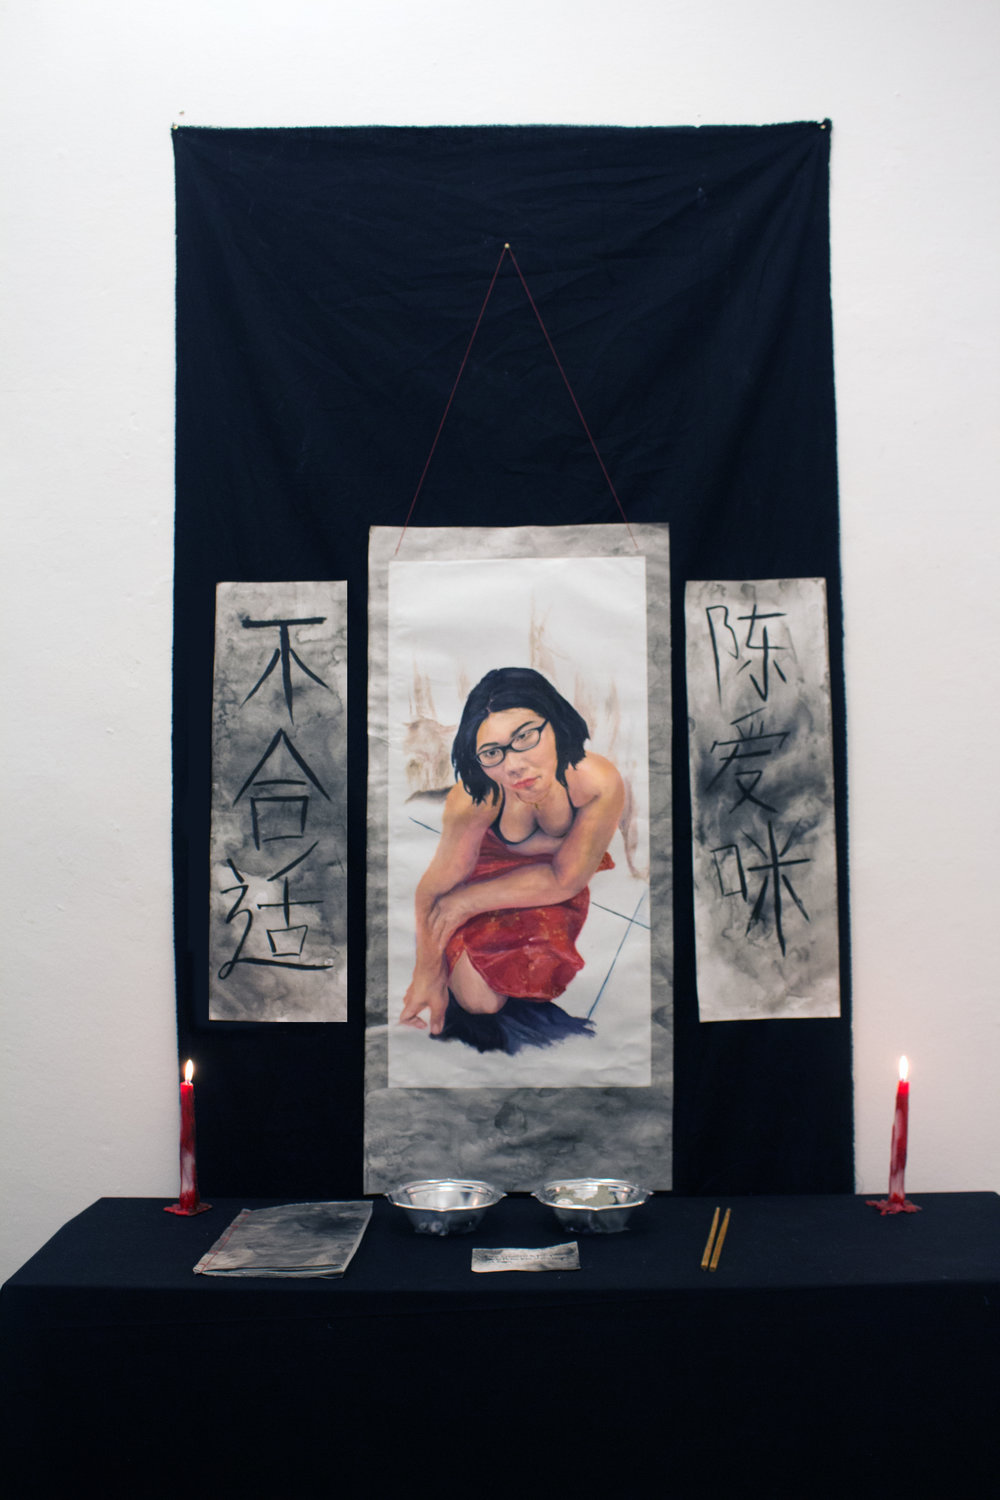 - Scroll painting: oil paint and india ink on rice paper, threadBook: monoprints with oil paint Chine-collé, ink, thread on rice paperAltar: candles, fabric, clay, marbles, styrofoam, bowls, ink, pen, chopsticks on table Dimensions variable2017